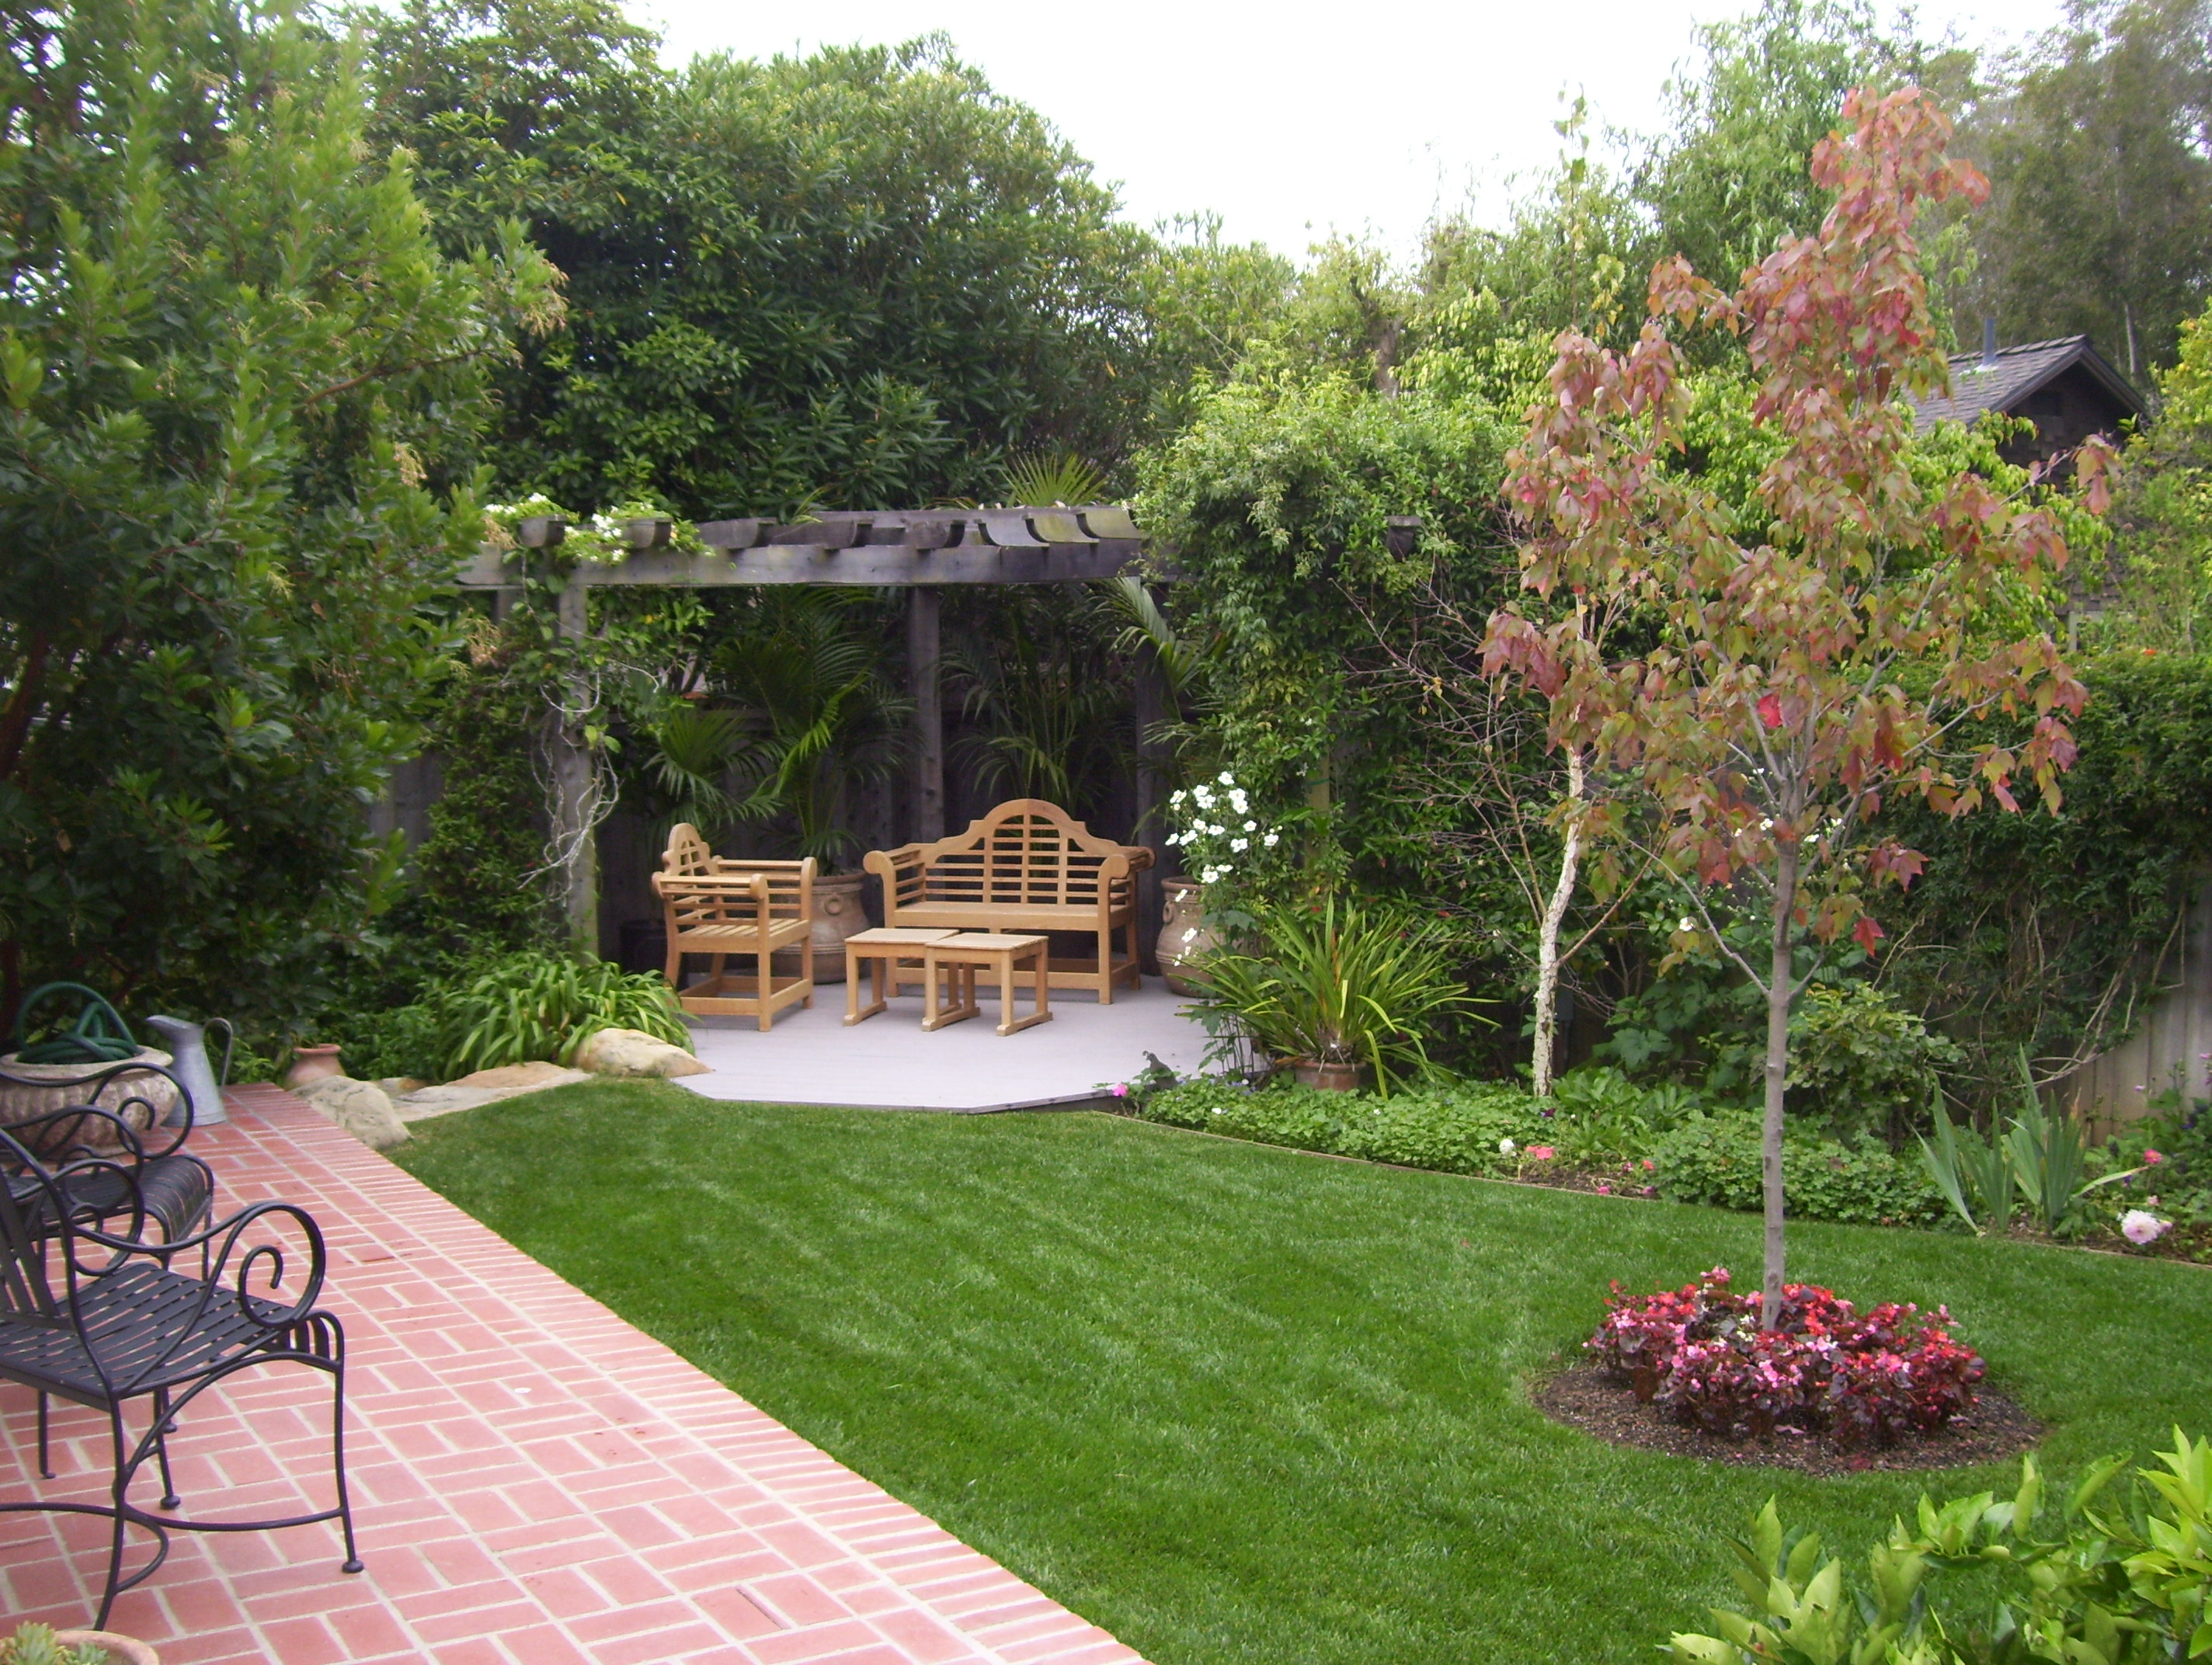 Backyard landscaping ideas santa barbara down to earth landscapes inc - Landscaping for small spaces gallery ...